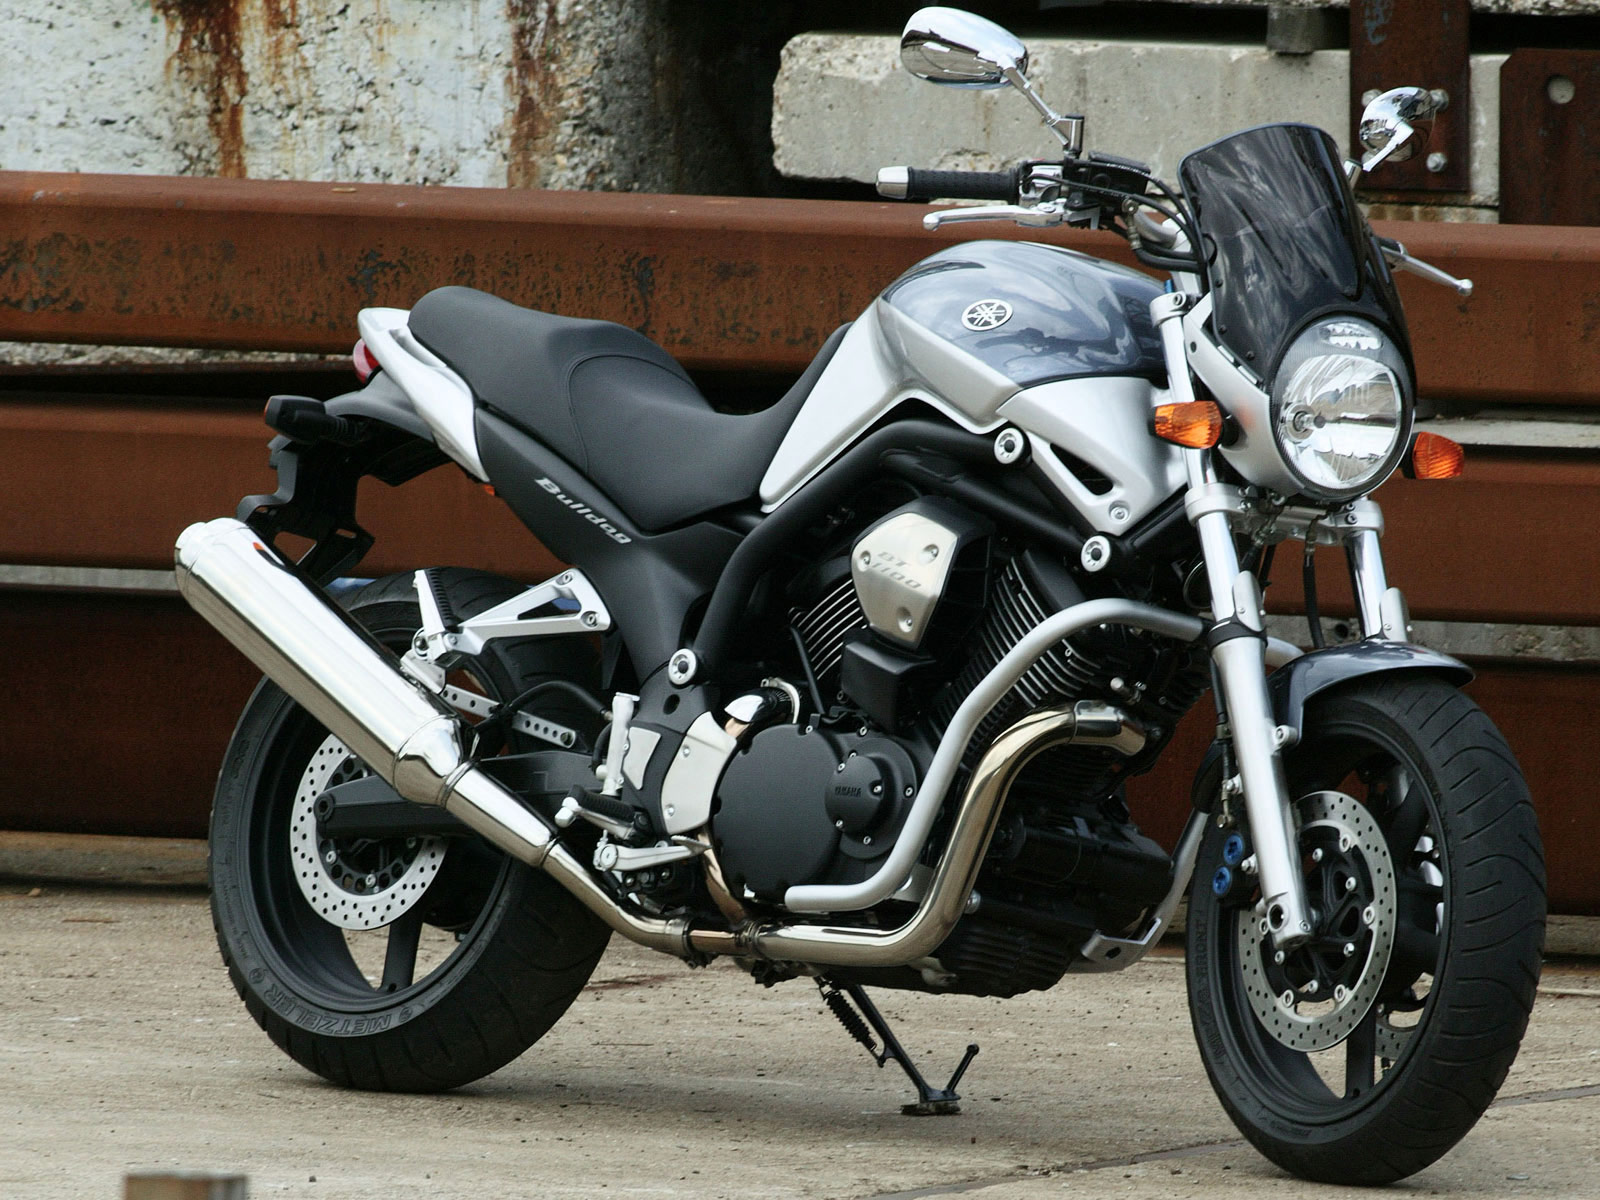 motorcycle insurance and wallpapers 2005 yamaha bt1100. Black Bedroom Furniture Sets. Home Design Ideas